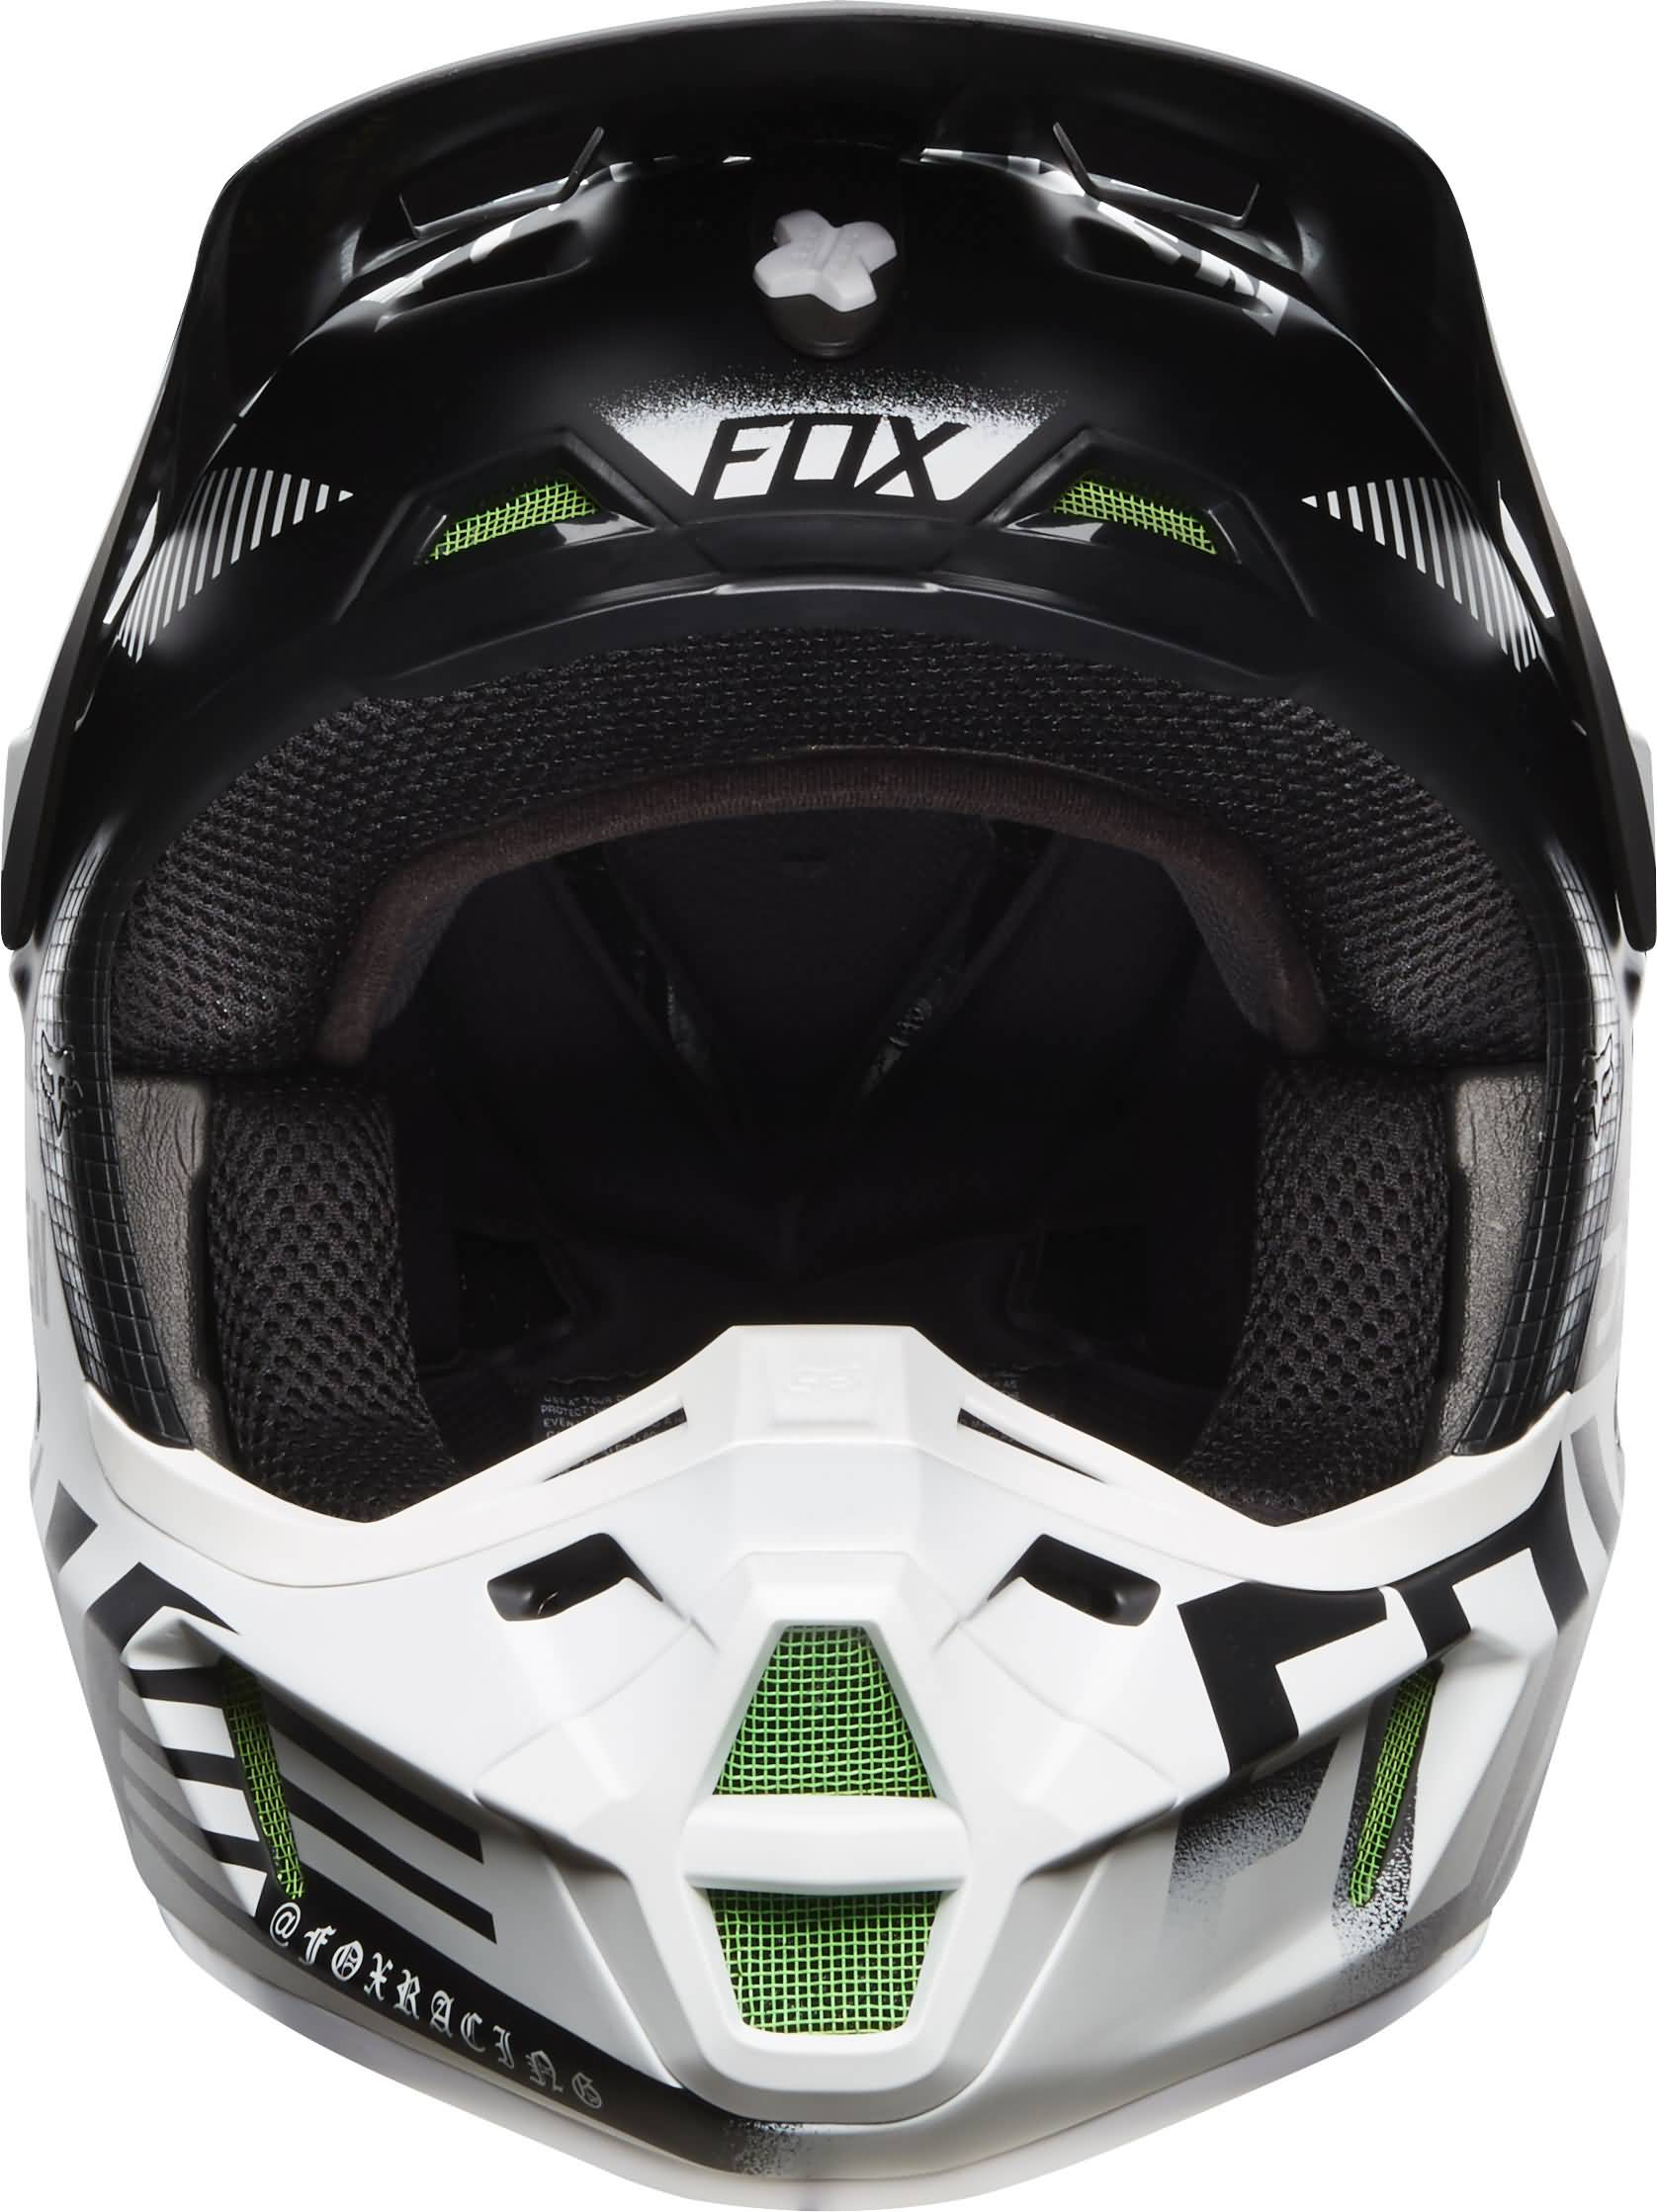 Fox Racing 180 Monster Pro Ciruit SE Motorcycle Gear Fall 2016 Overview